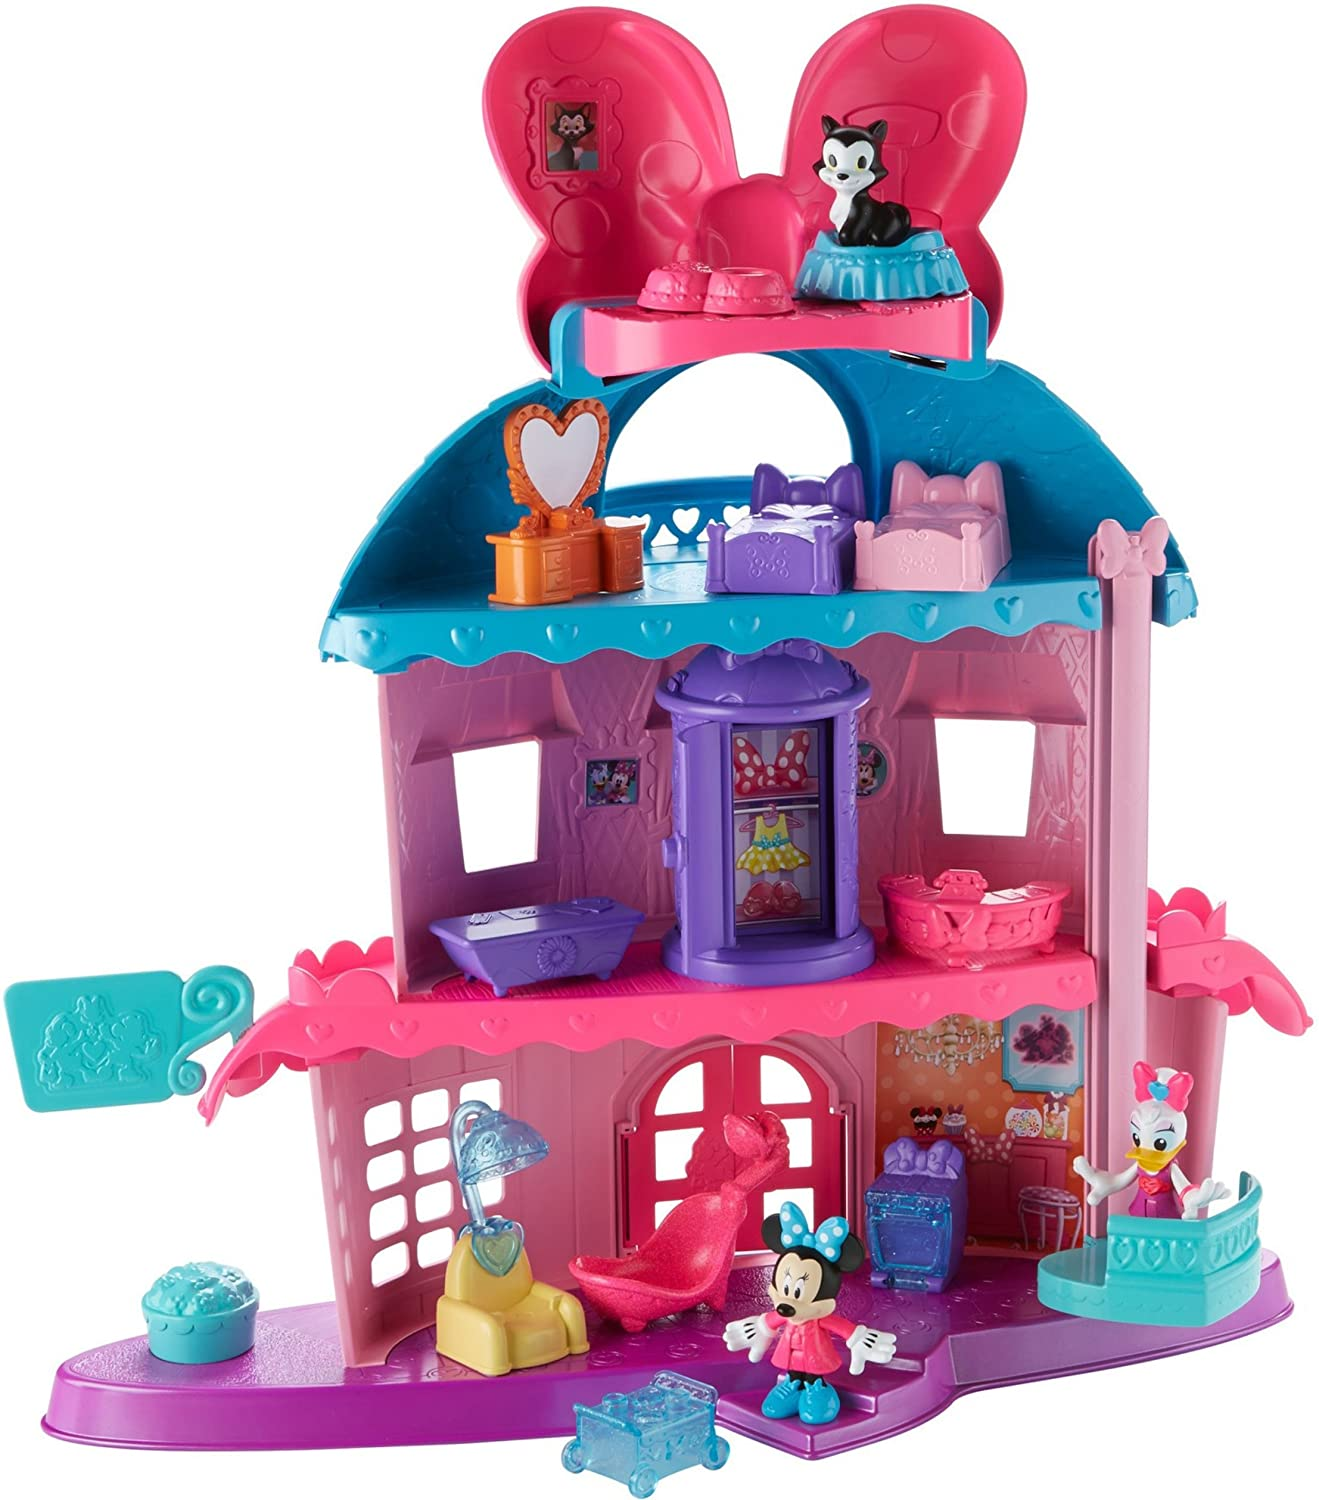 9 Best Fisher Price Dollhouse Reviews of 2021 14